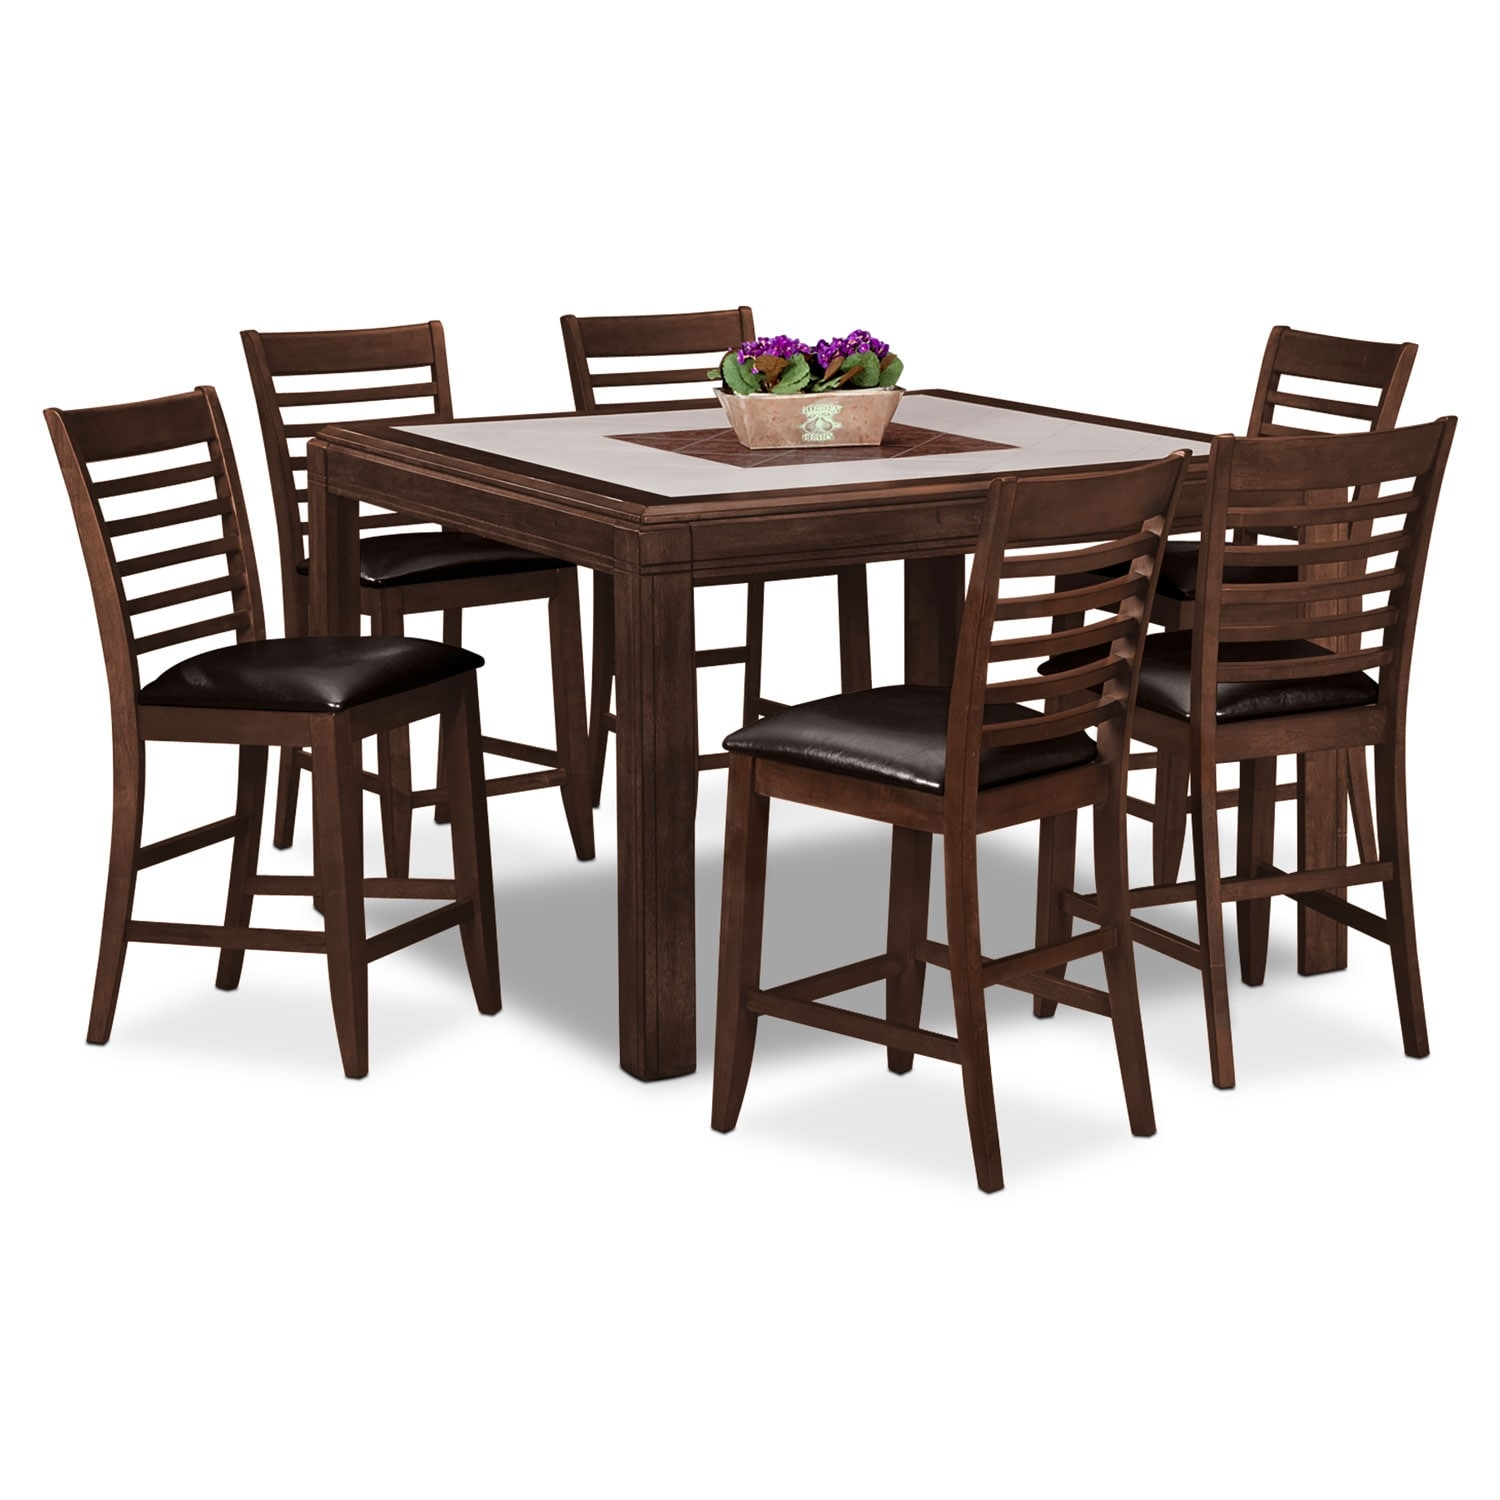 Dining Room Furniture - Deer Creek II 7 Pc. Counter-Height Dinette